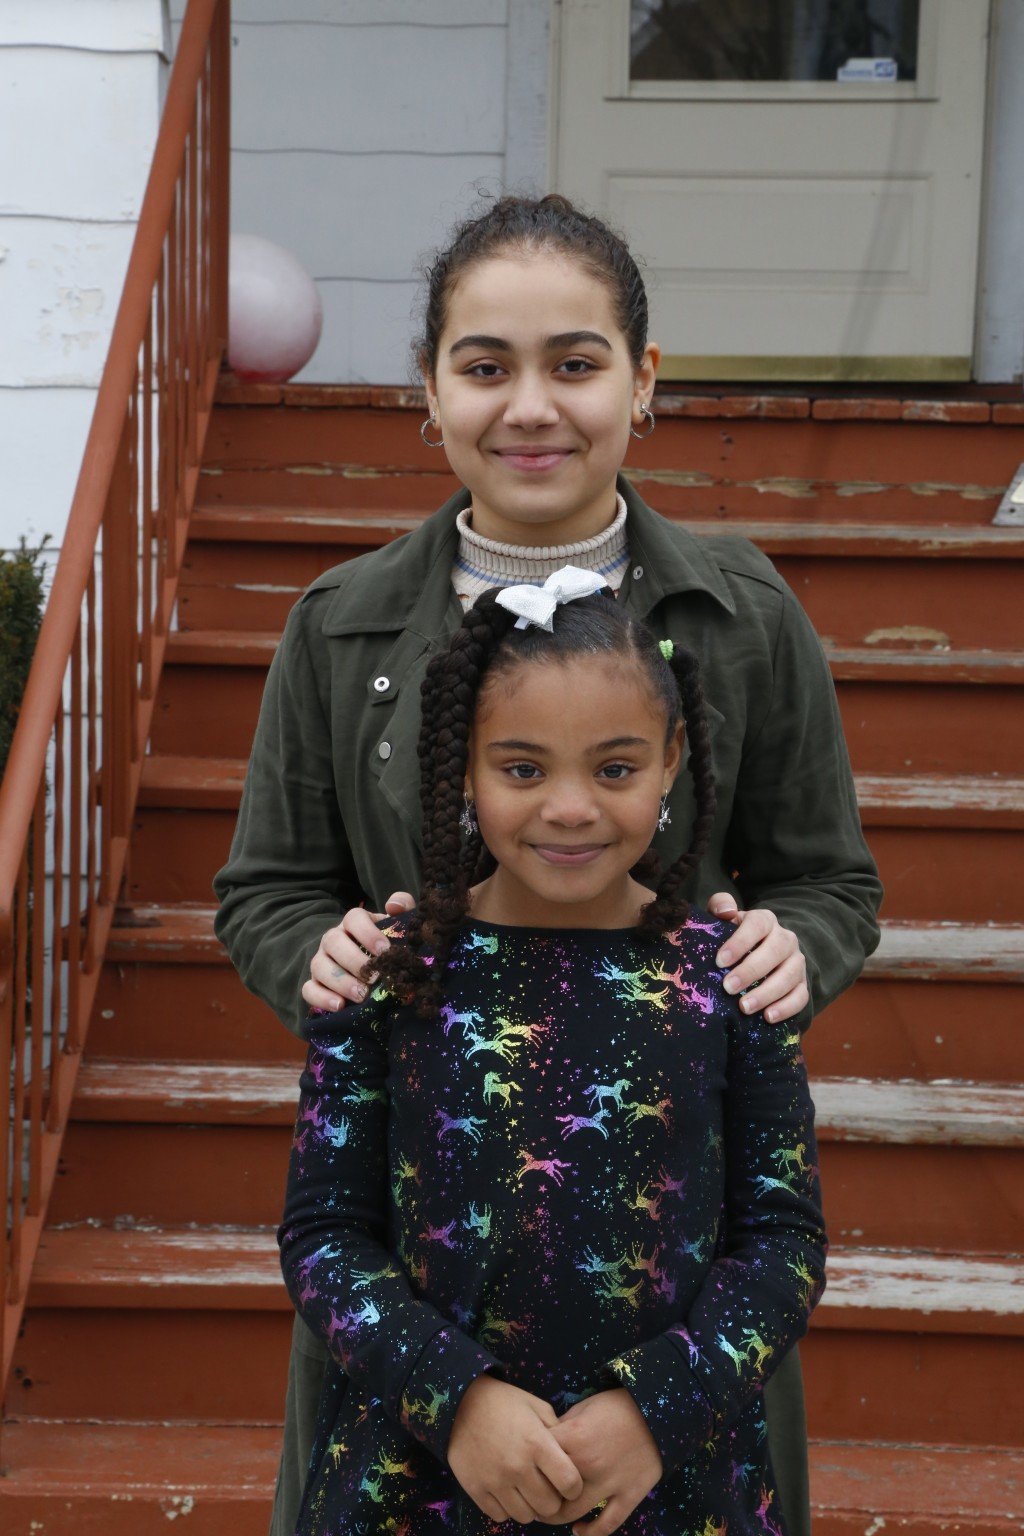 Jalen Grimes, 13, stands behind 7-year-old sister, Sydney, outside their home in Chicago on Sunday, March 22, 2020. Both girls are now doing schoolwor...